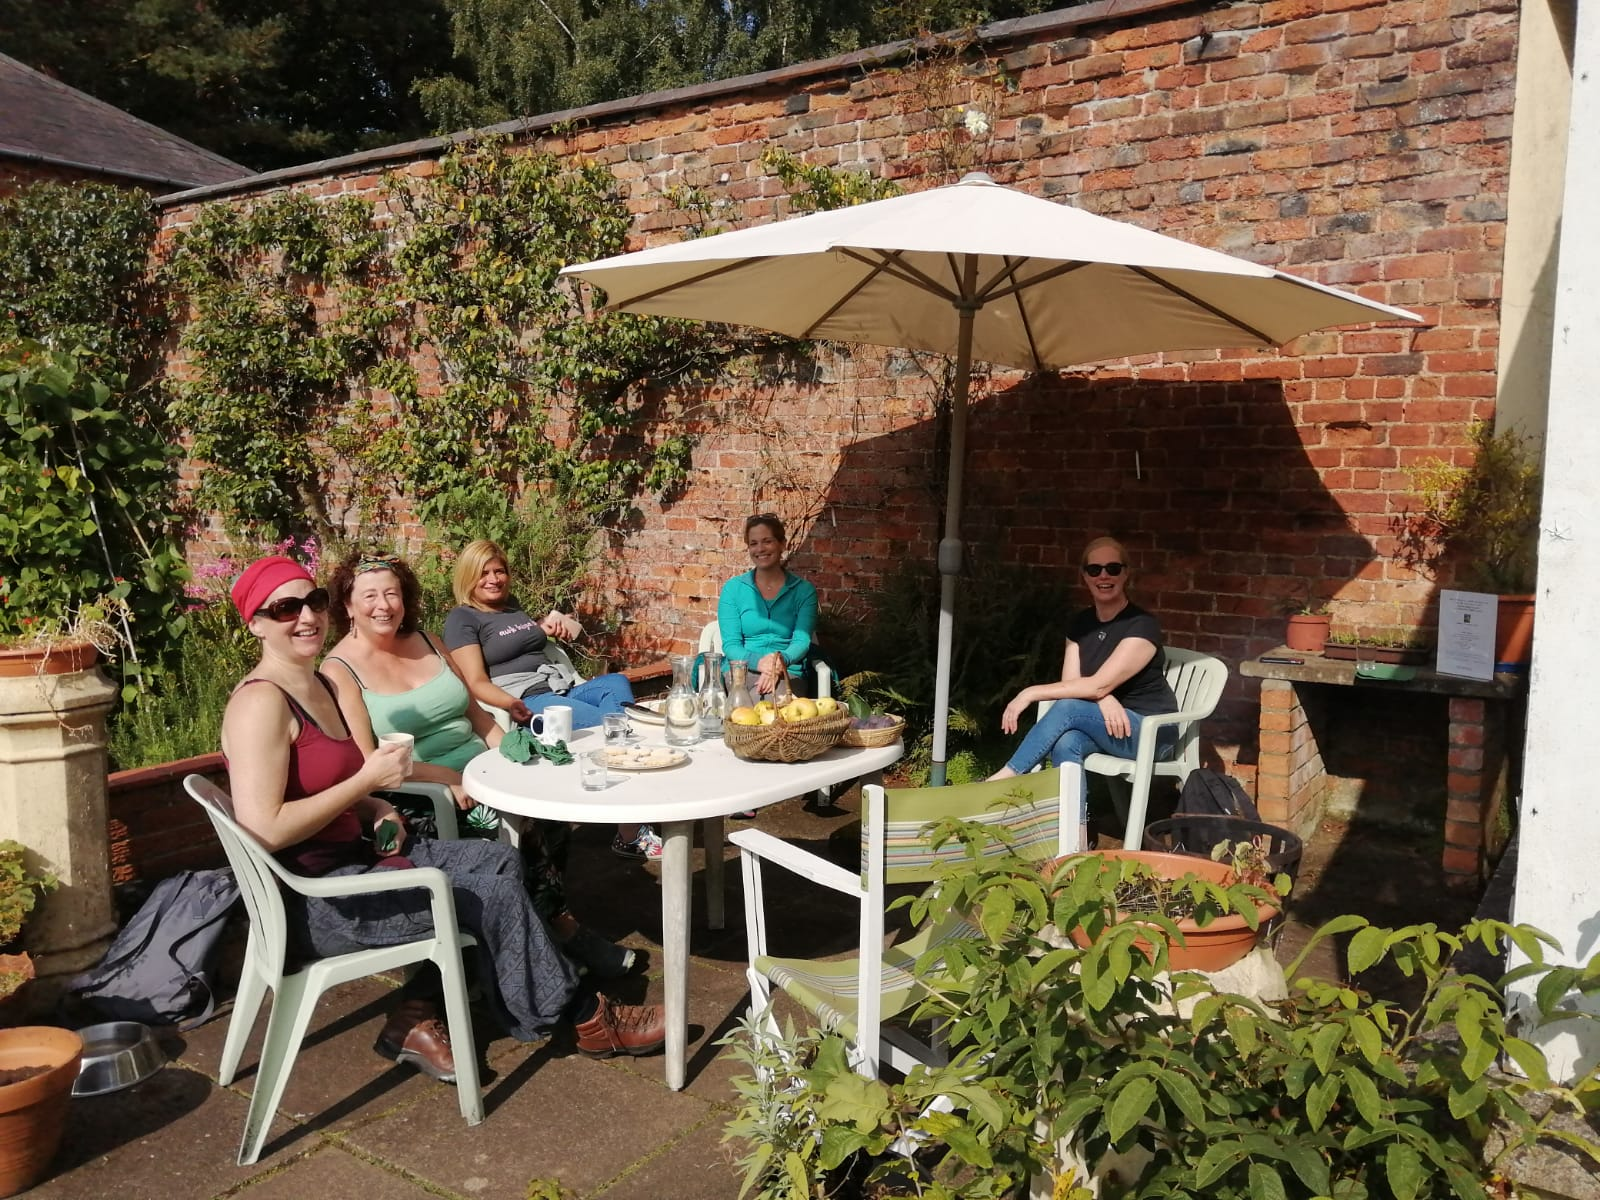 Sitting in the Victorian Walled Garden, Lunching,